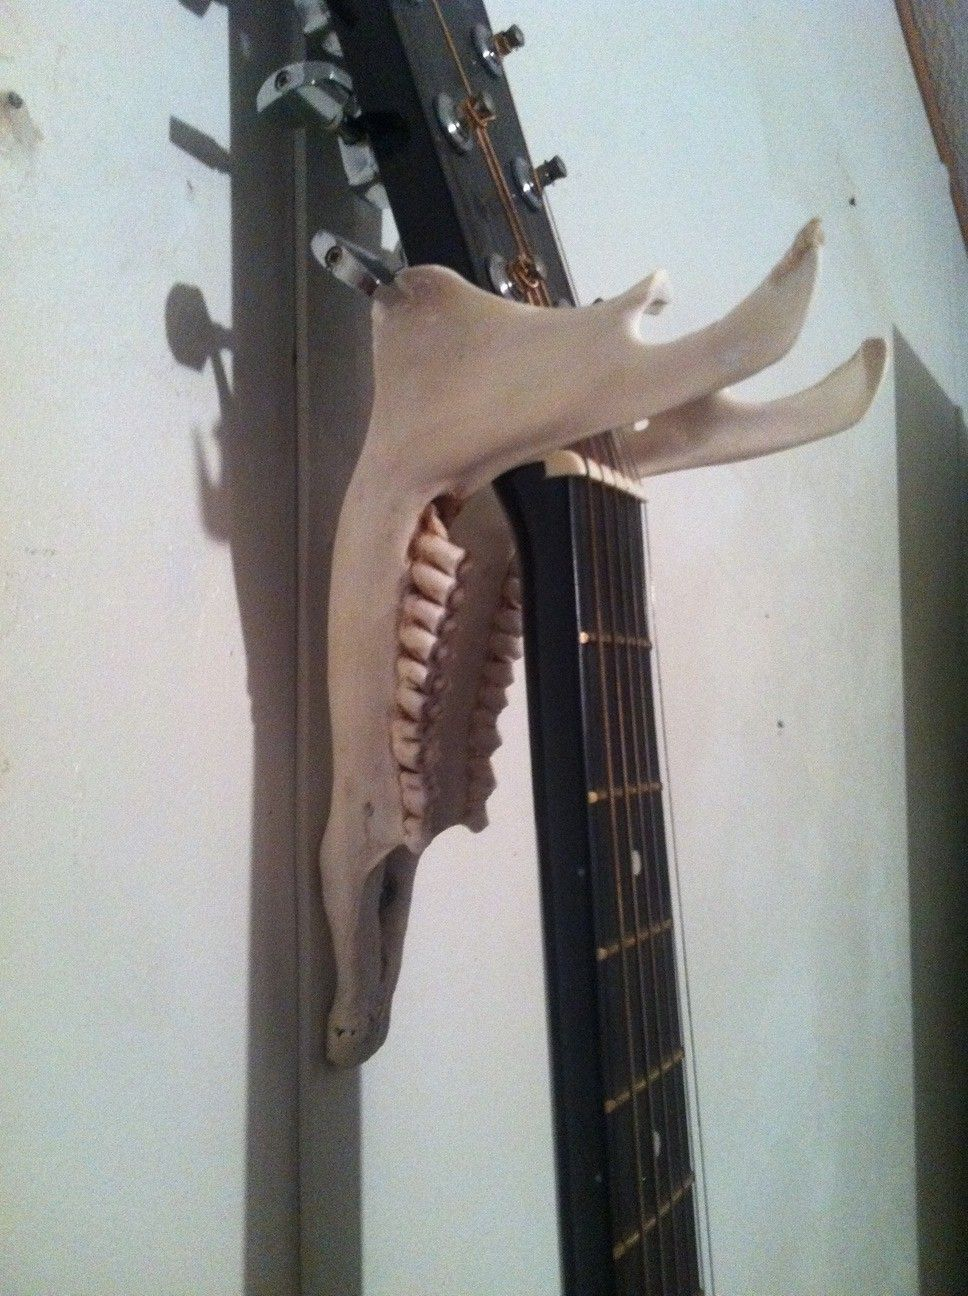 Homemade Guitar Wall Hanger Made Out Of A White Tailed